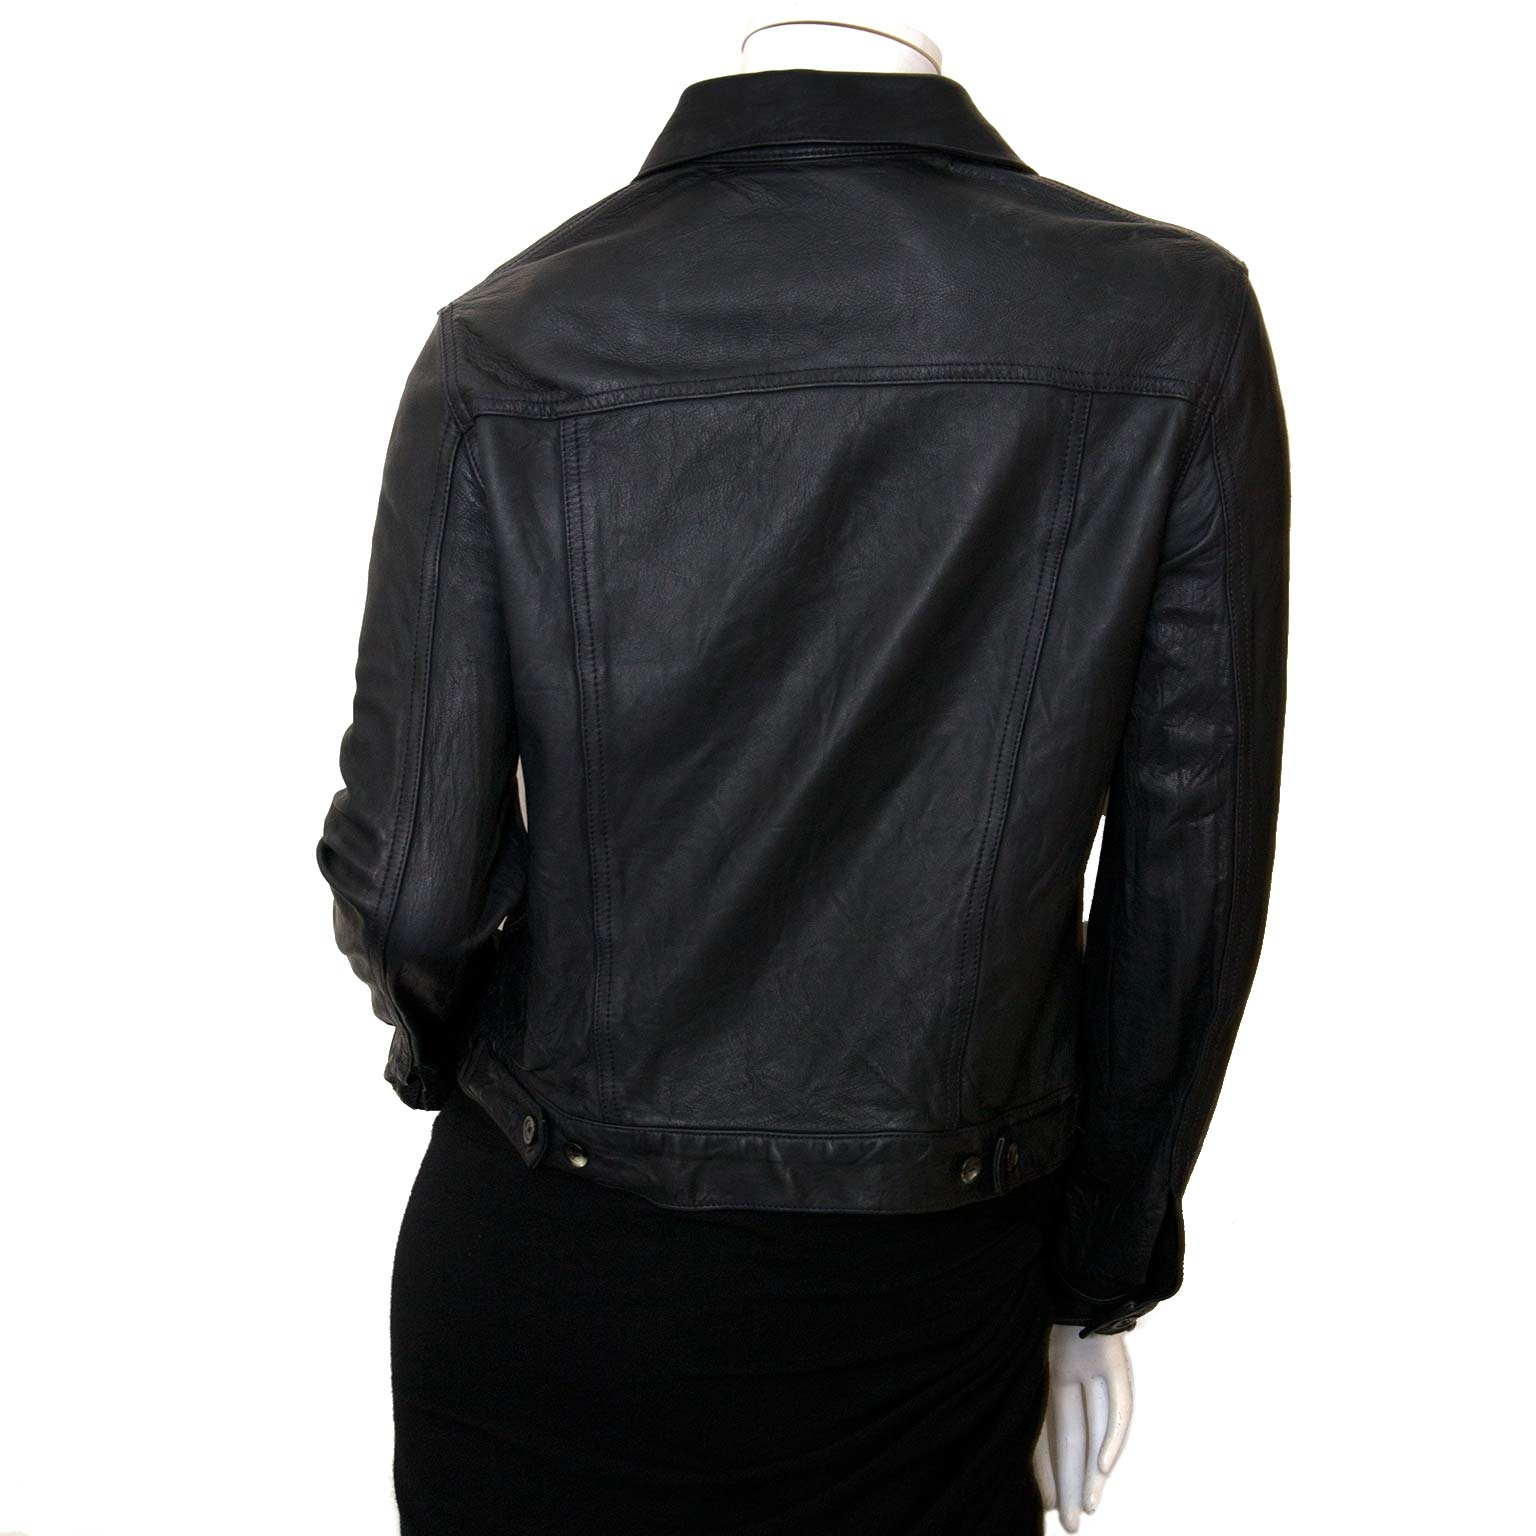 koop The Row Black Coltra Bonded Leather Jacket bij labellov en betaal veilig